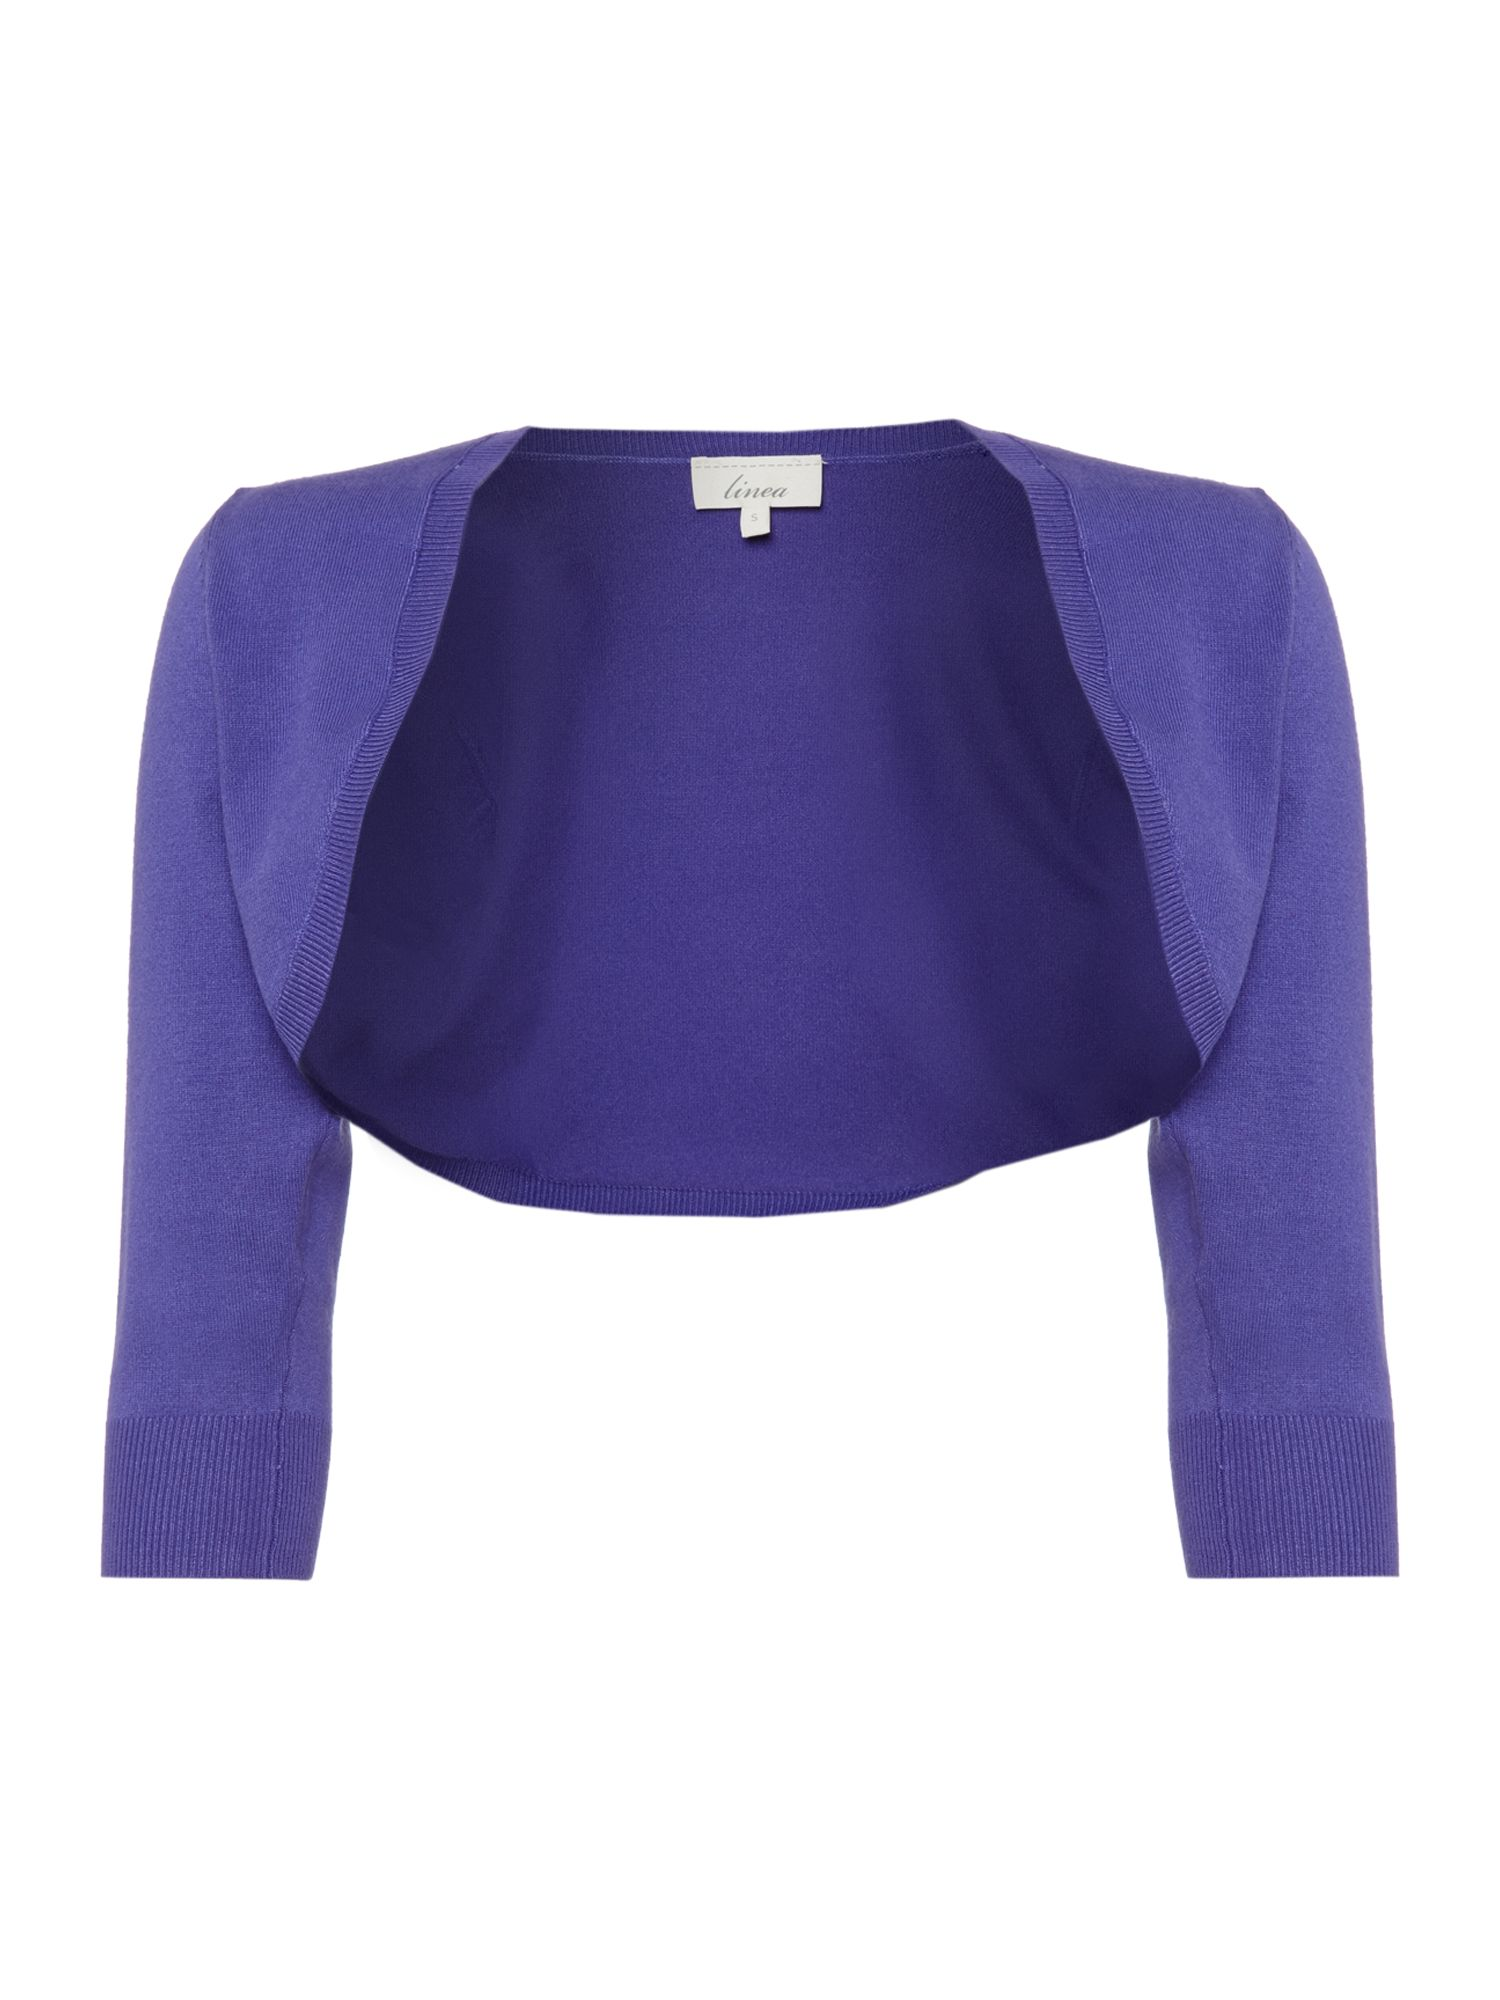 Essential shrug 3/4 sleeve